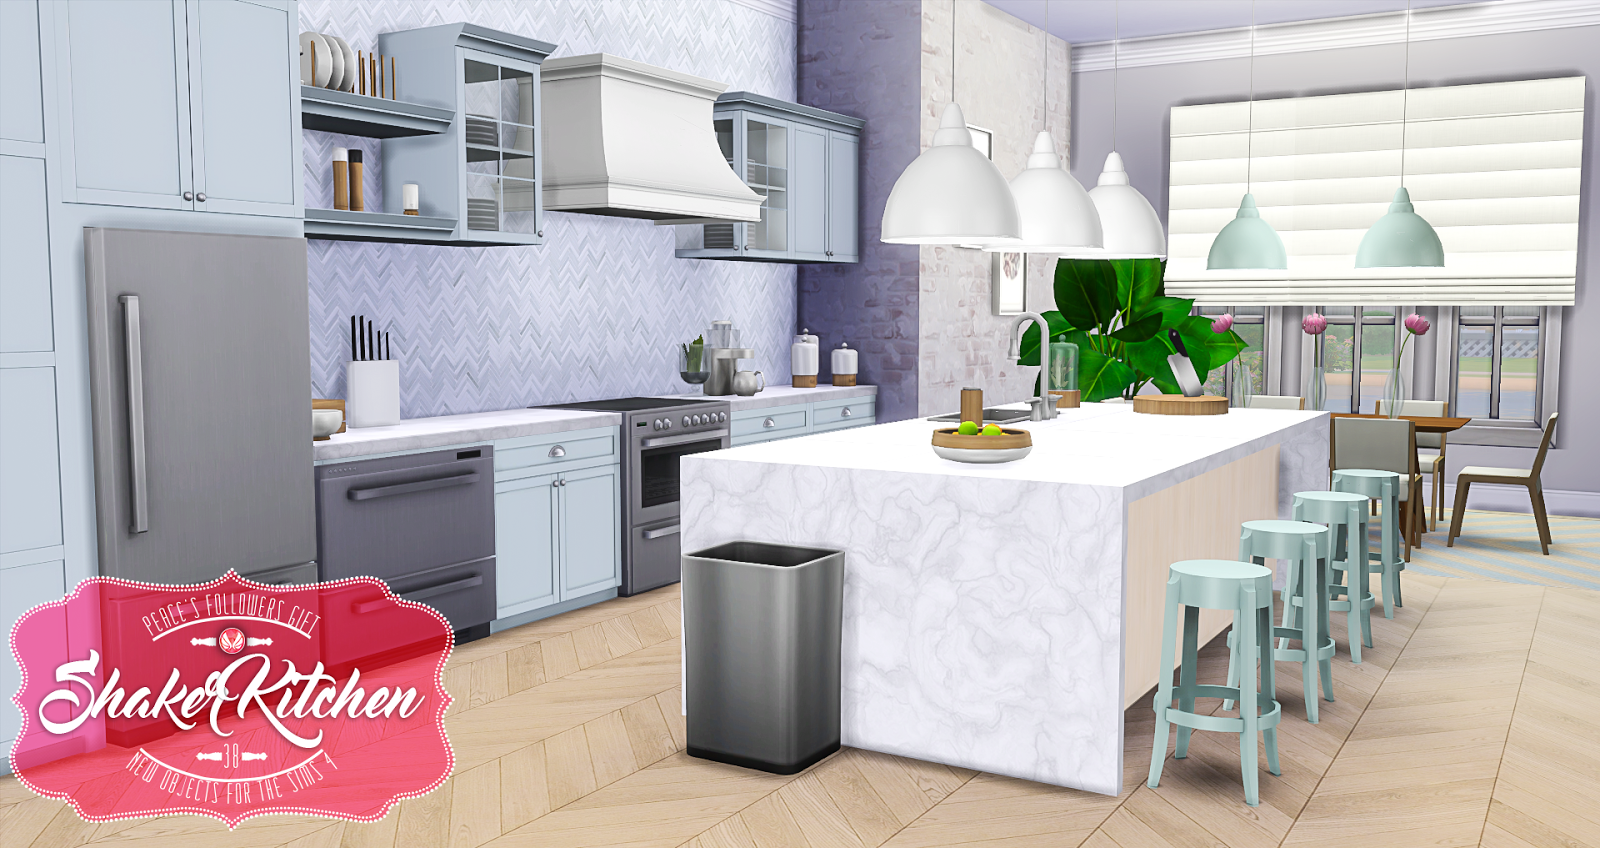 Simsational Designs Updated Shaker Kitchen